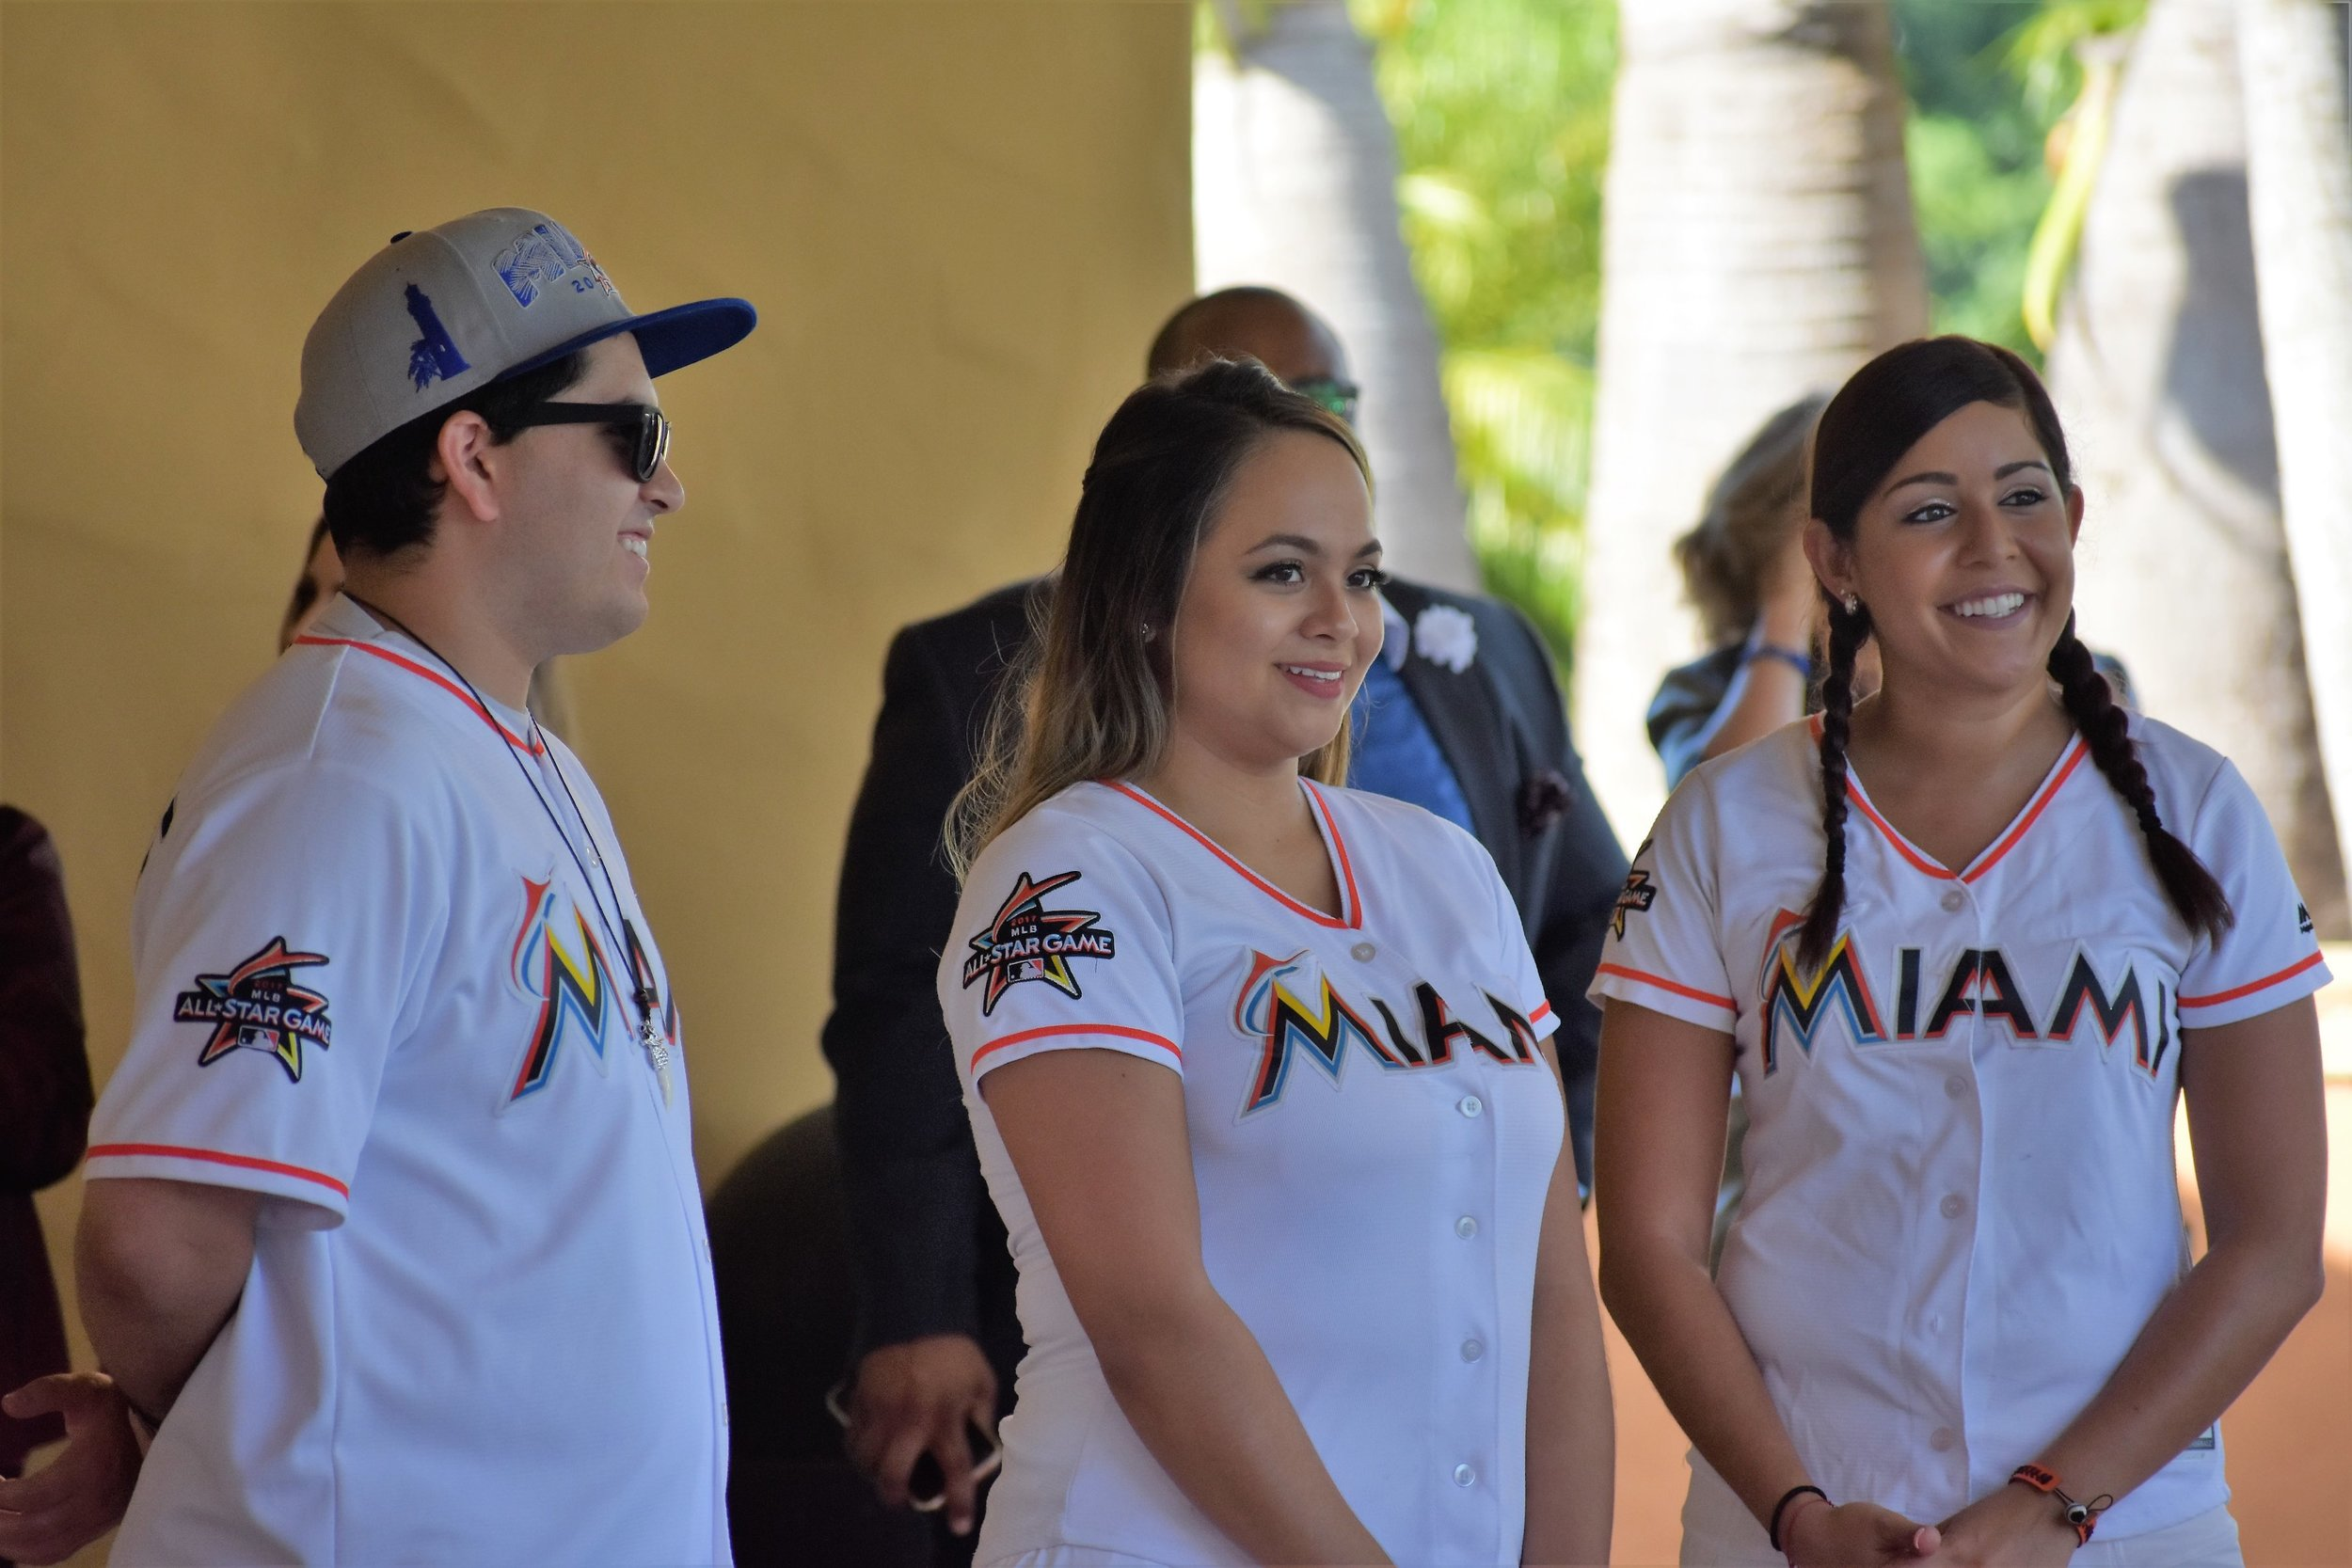 MARLINS-PEP-SQUAD-SWEET-CHANCE.JPG